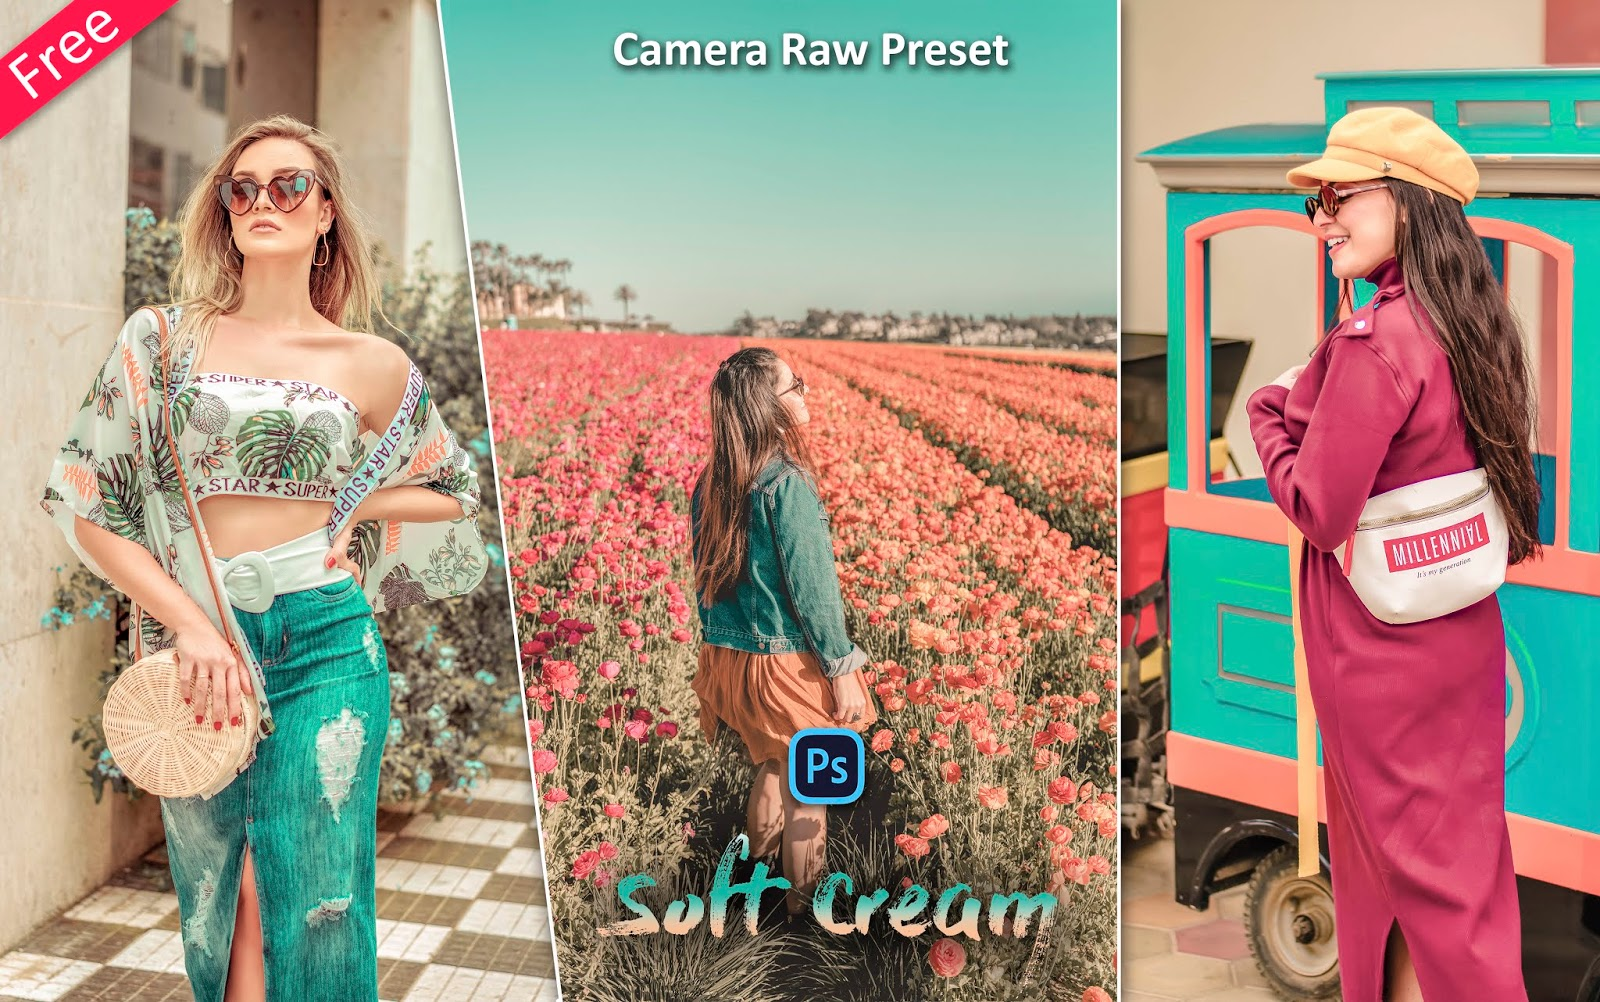 Soft Cream Camera Raw Preset for Free | How to Edit Photos Like Soft Cream Effect in Photoshop